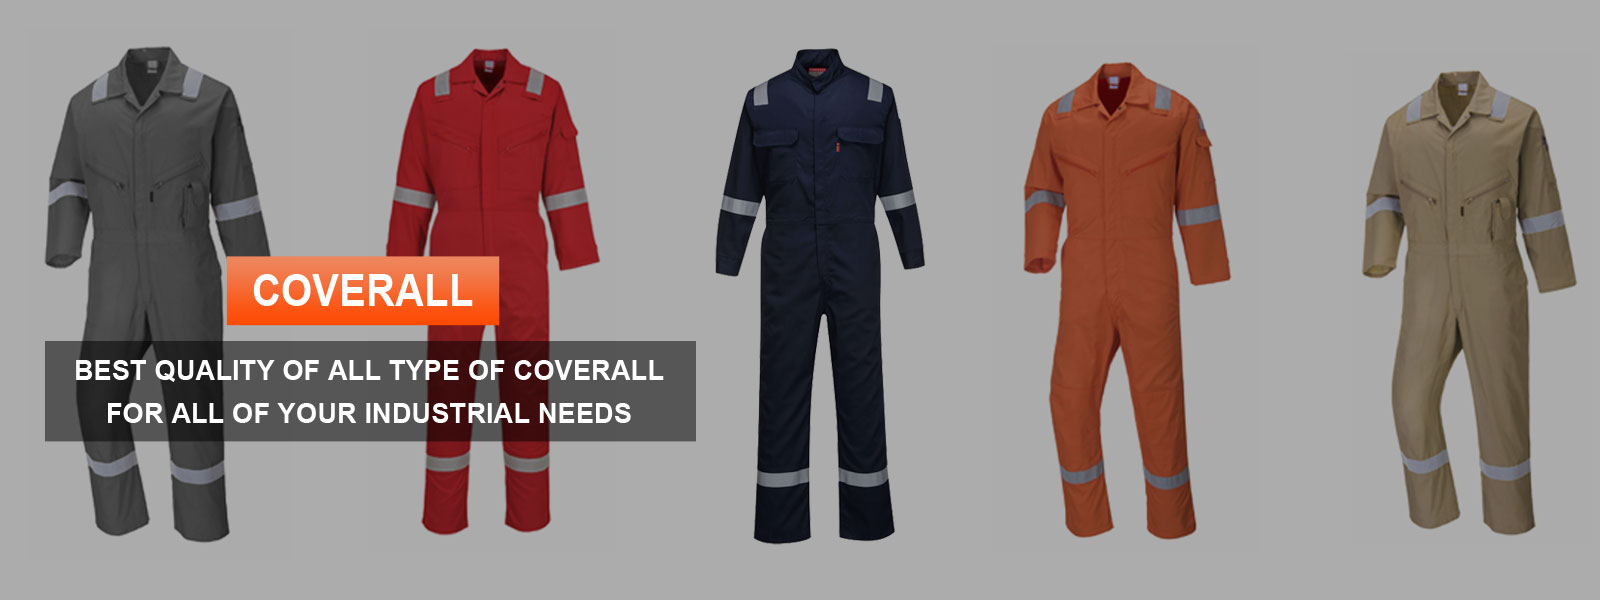 Coverall Manufacturers in United states